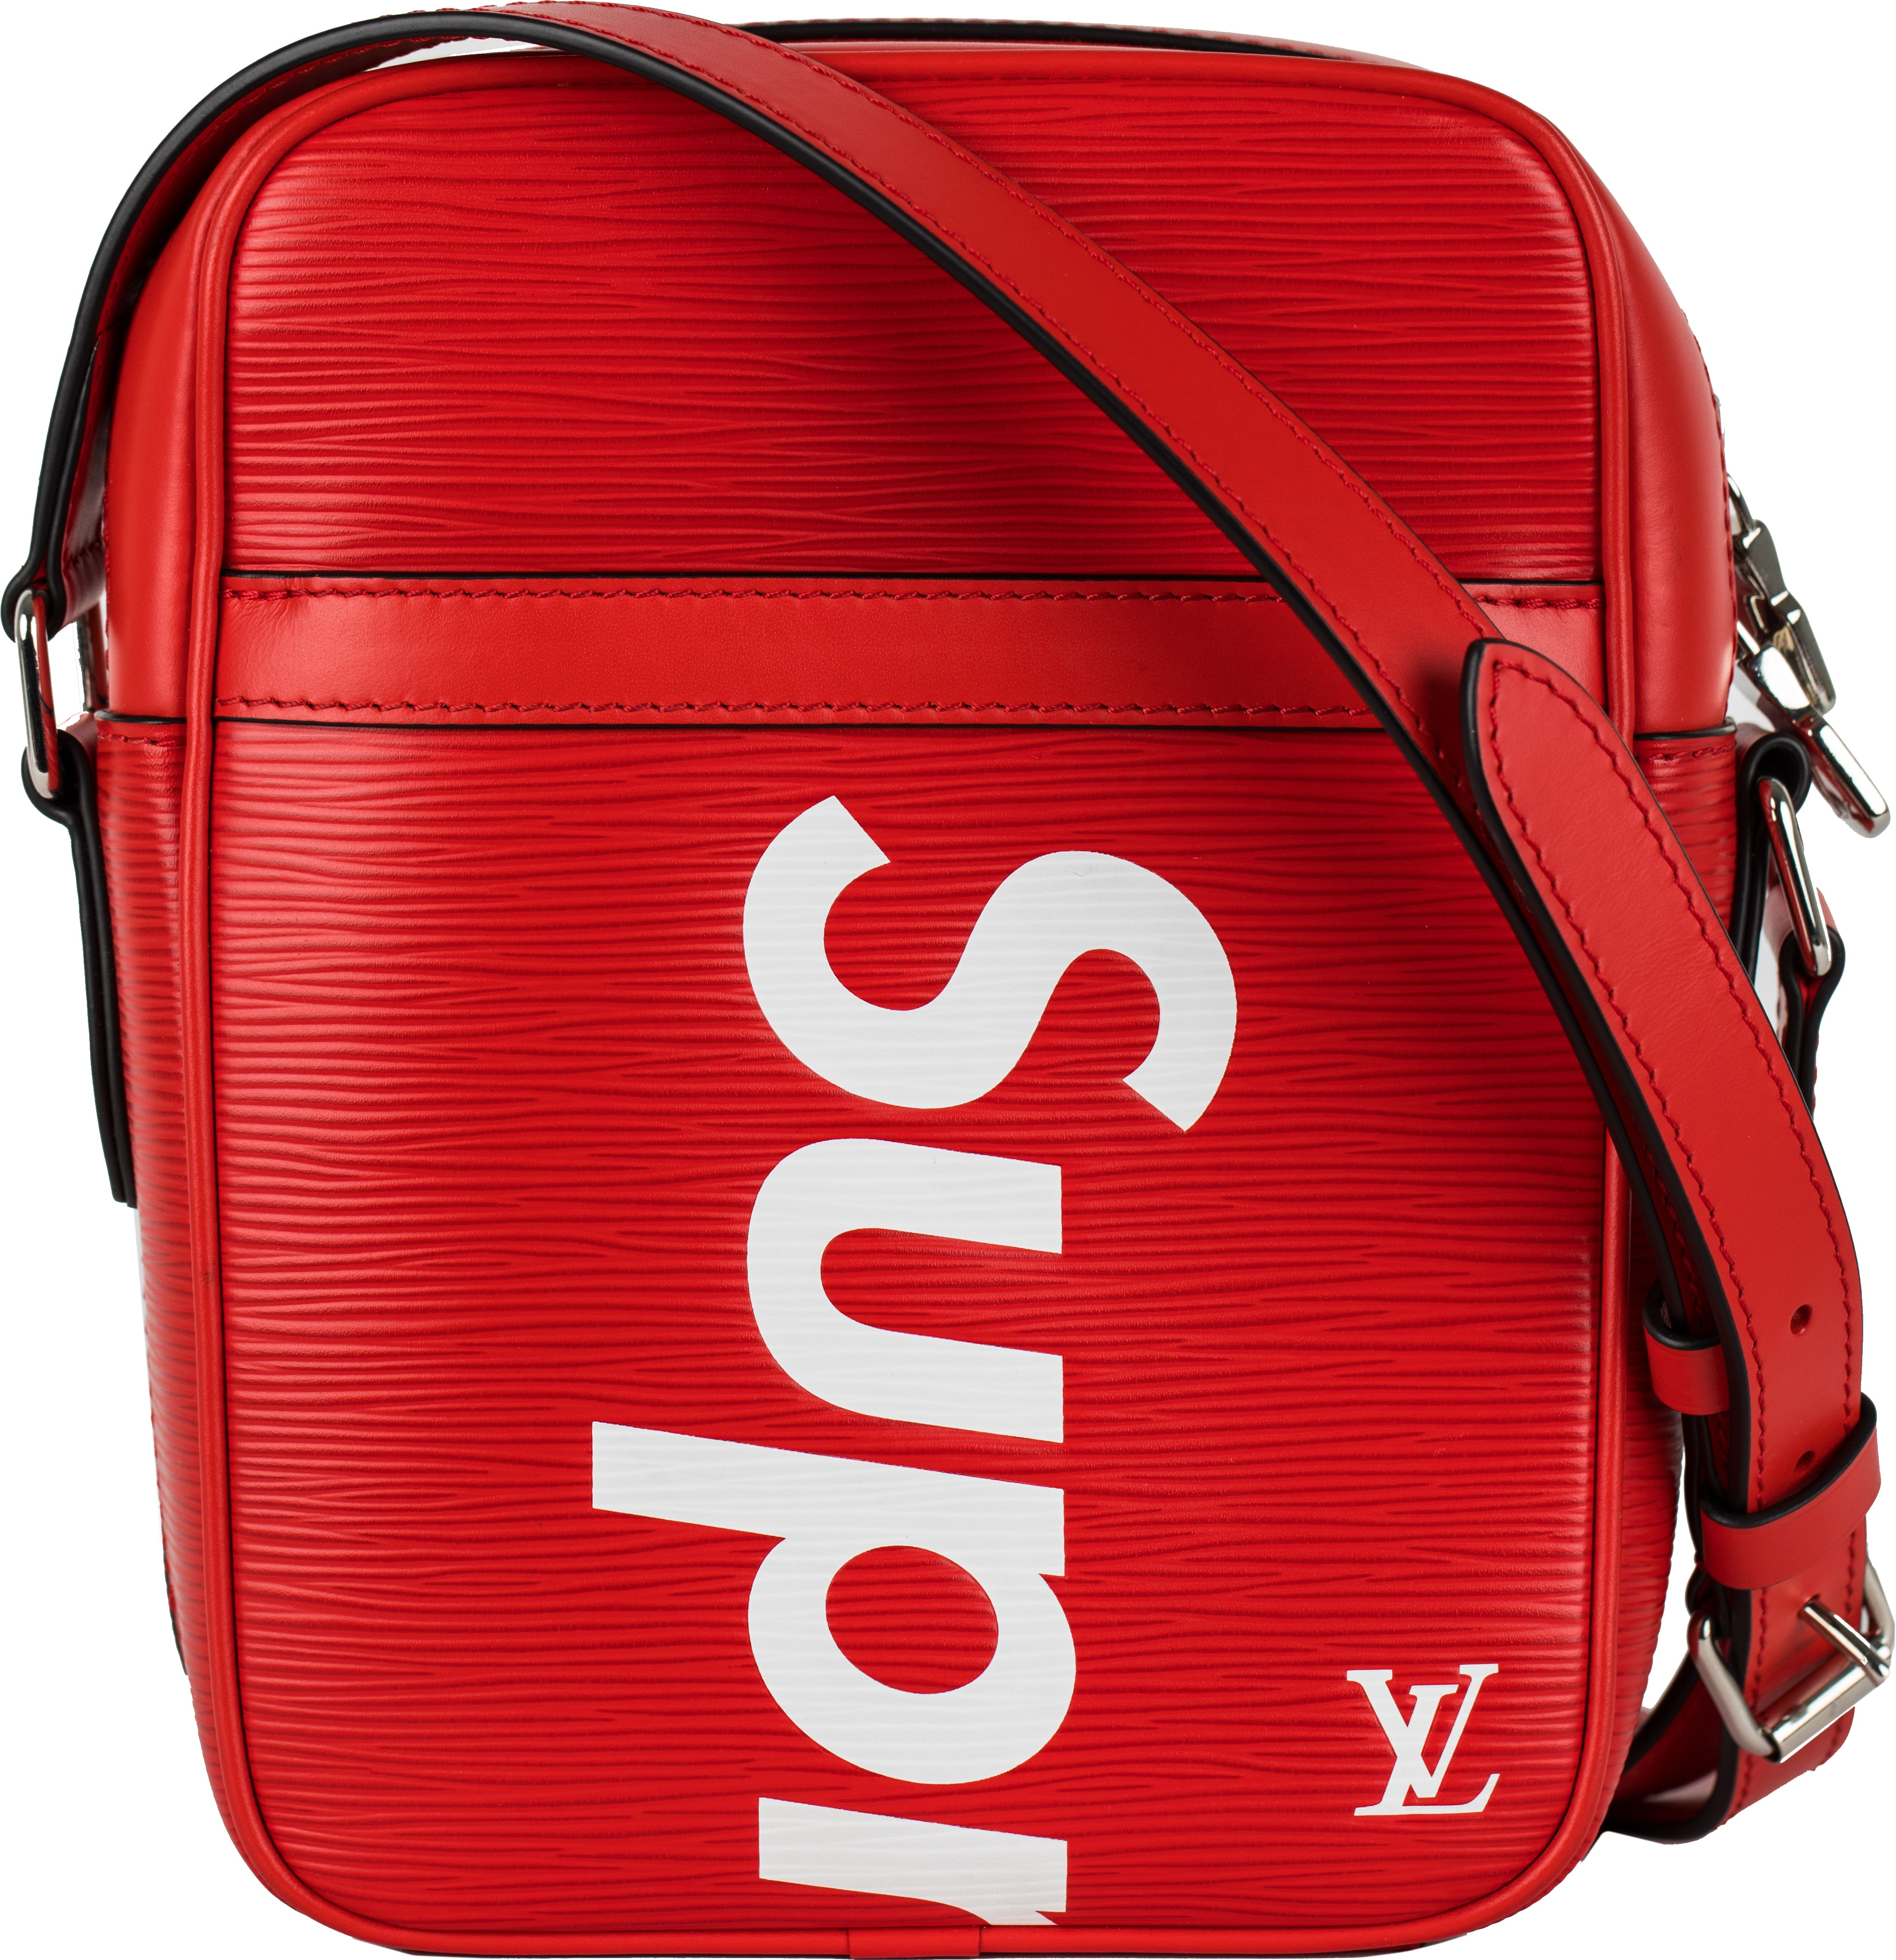 Louis Vuitton x Supreme Danube Epi PM Red